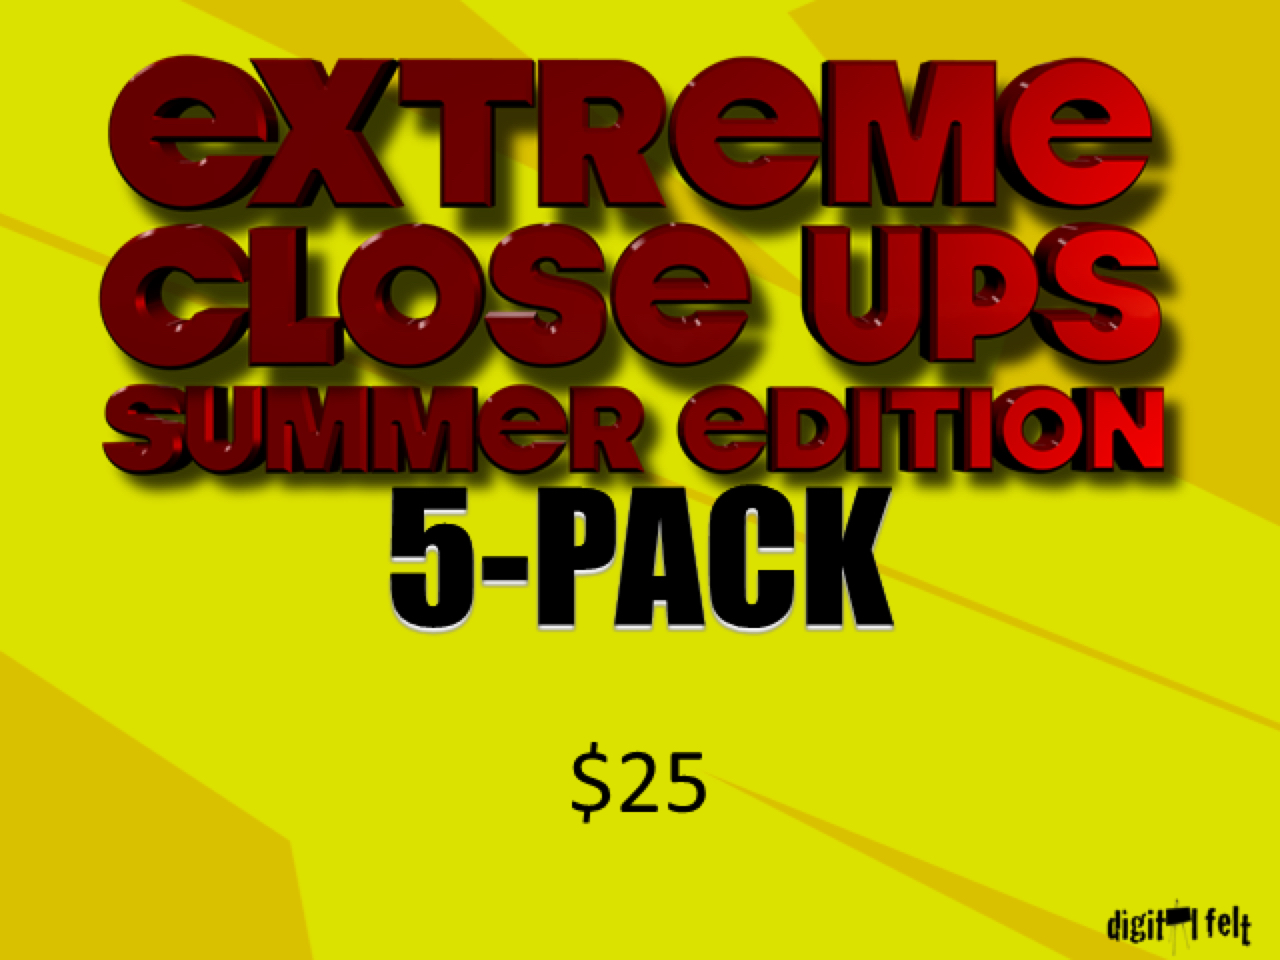 EXTREME CLOSE UPS SUMMER 5 PACK